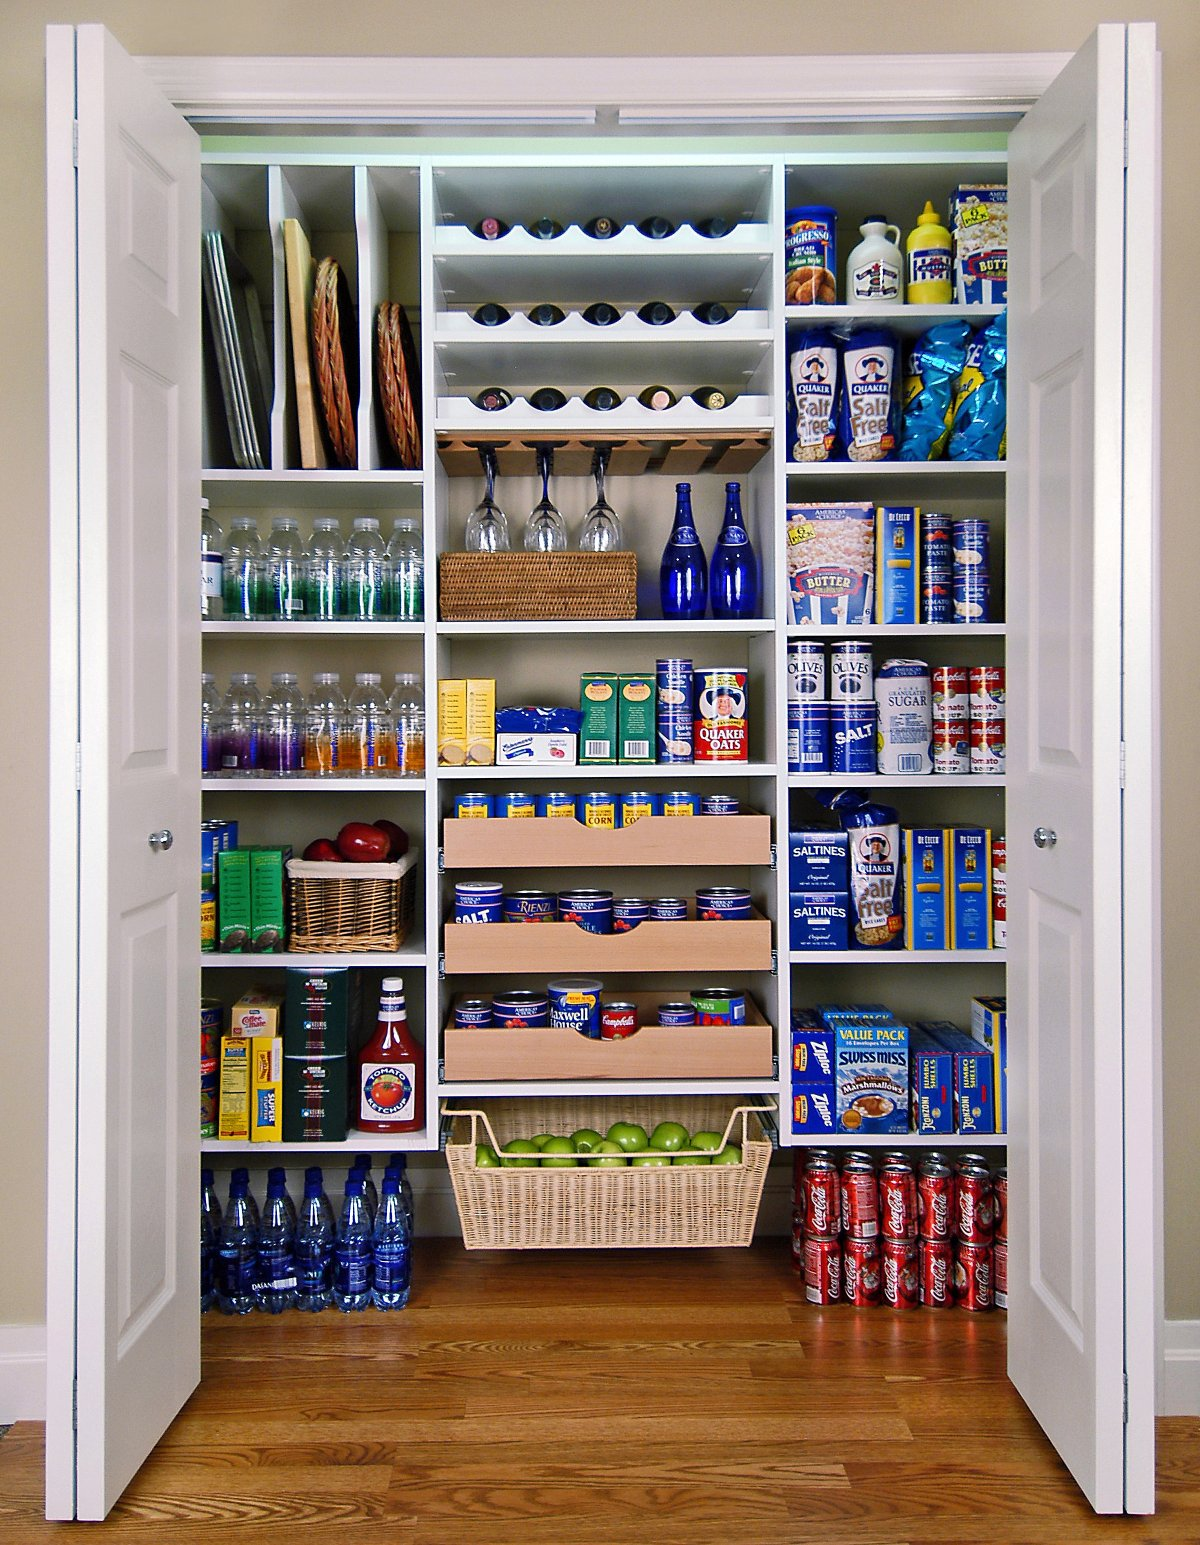 Tidy Closet Storage Ideas for Kitchen Supply with White Shelves and Simple Wine Racks above Oak Flooring